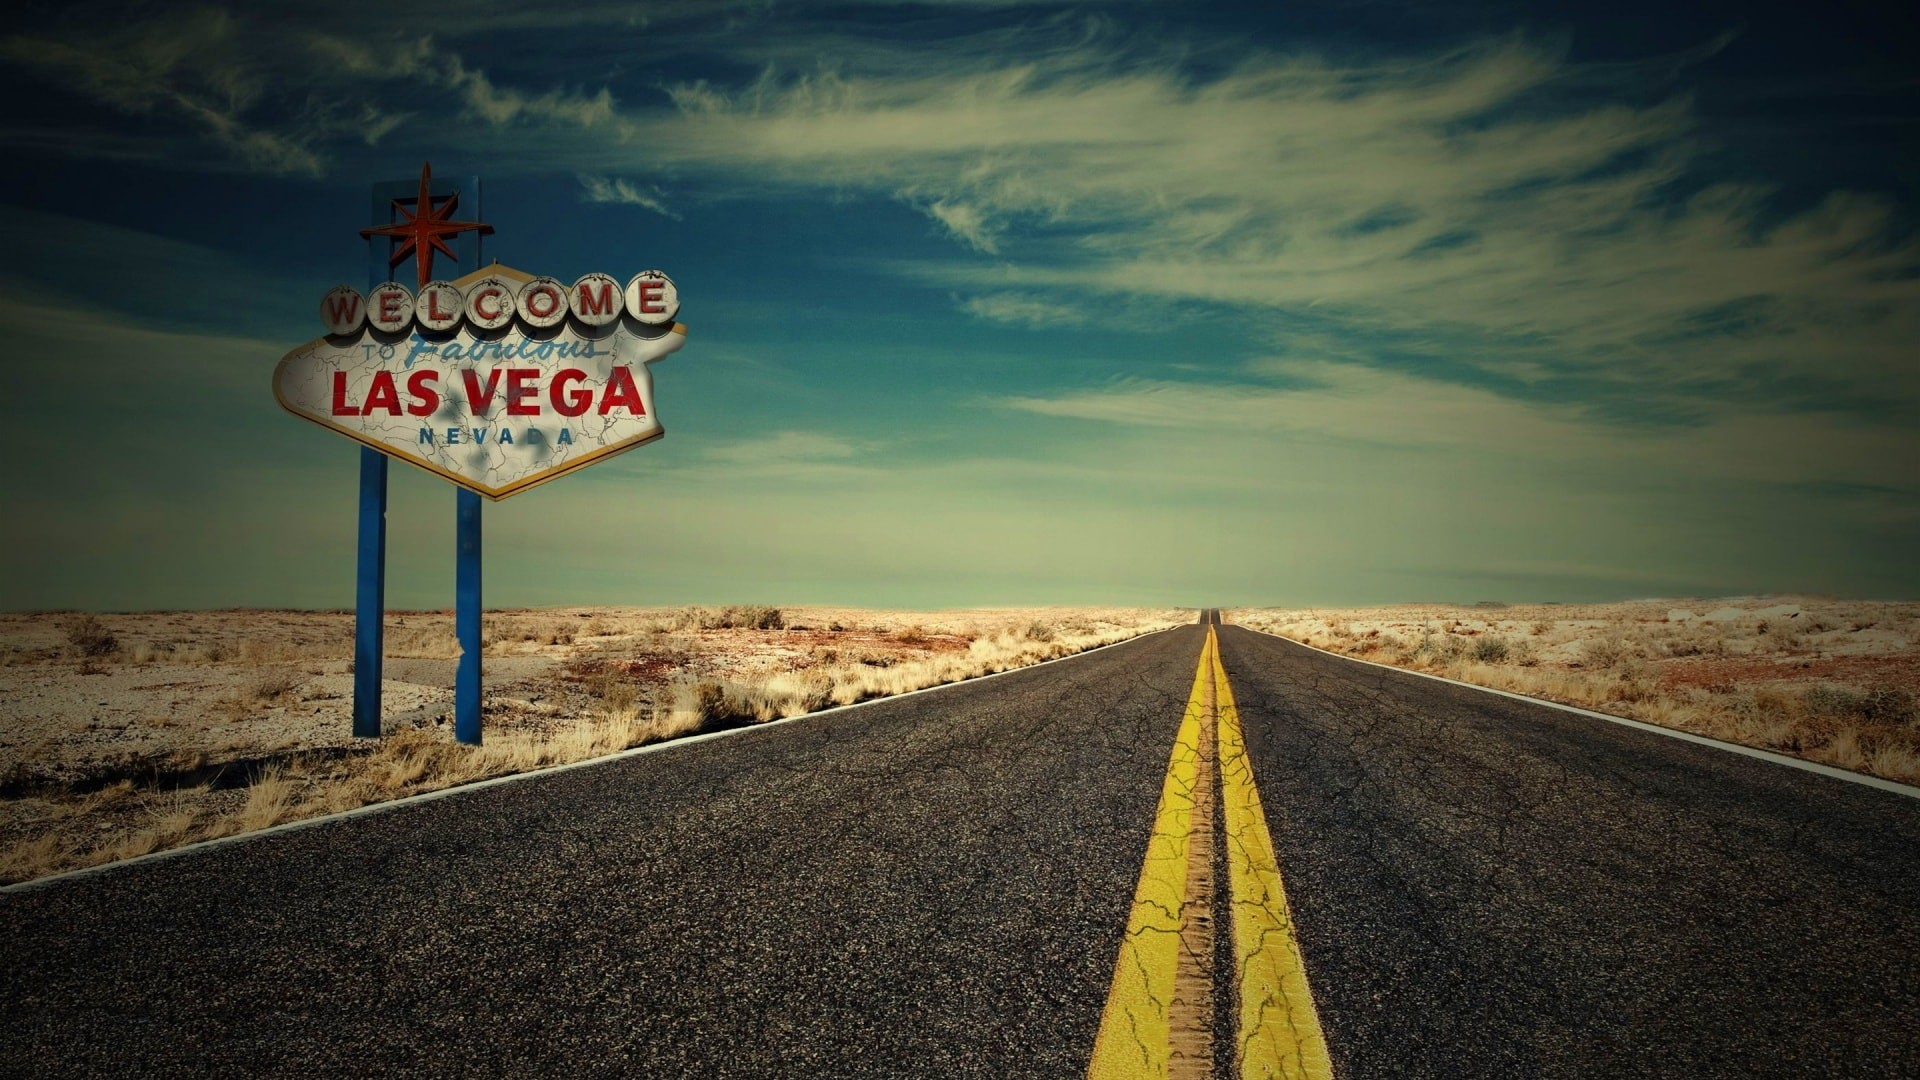 1920x1080 Las Vegas free wallpapers Las Vegas backgrounds